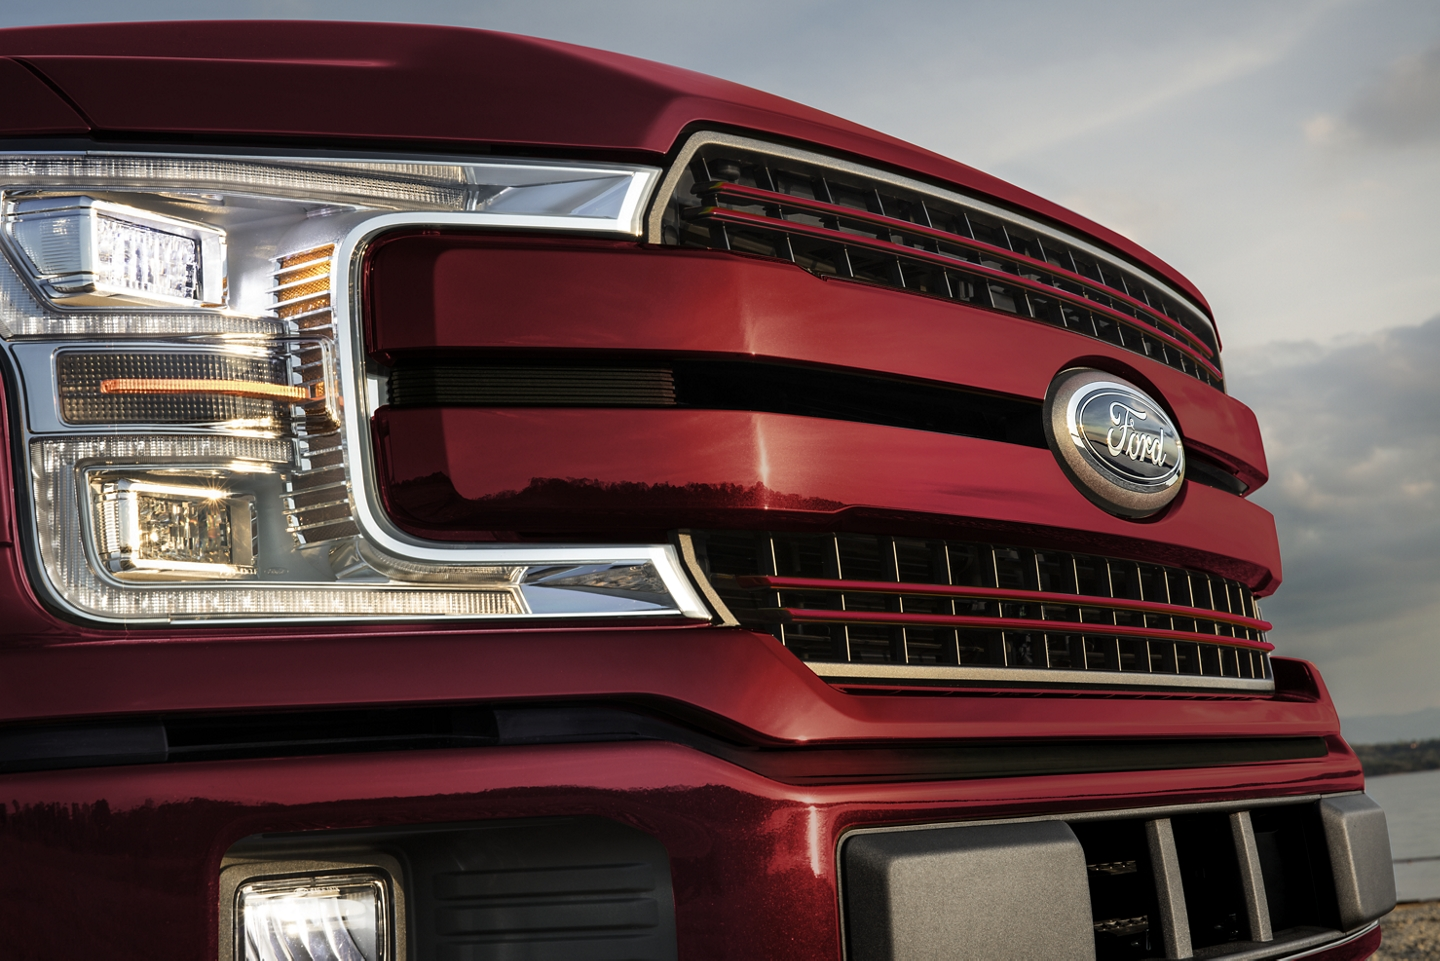 2020 Ford F-150 Exterior Details